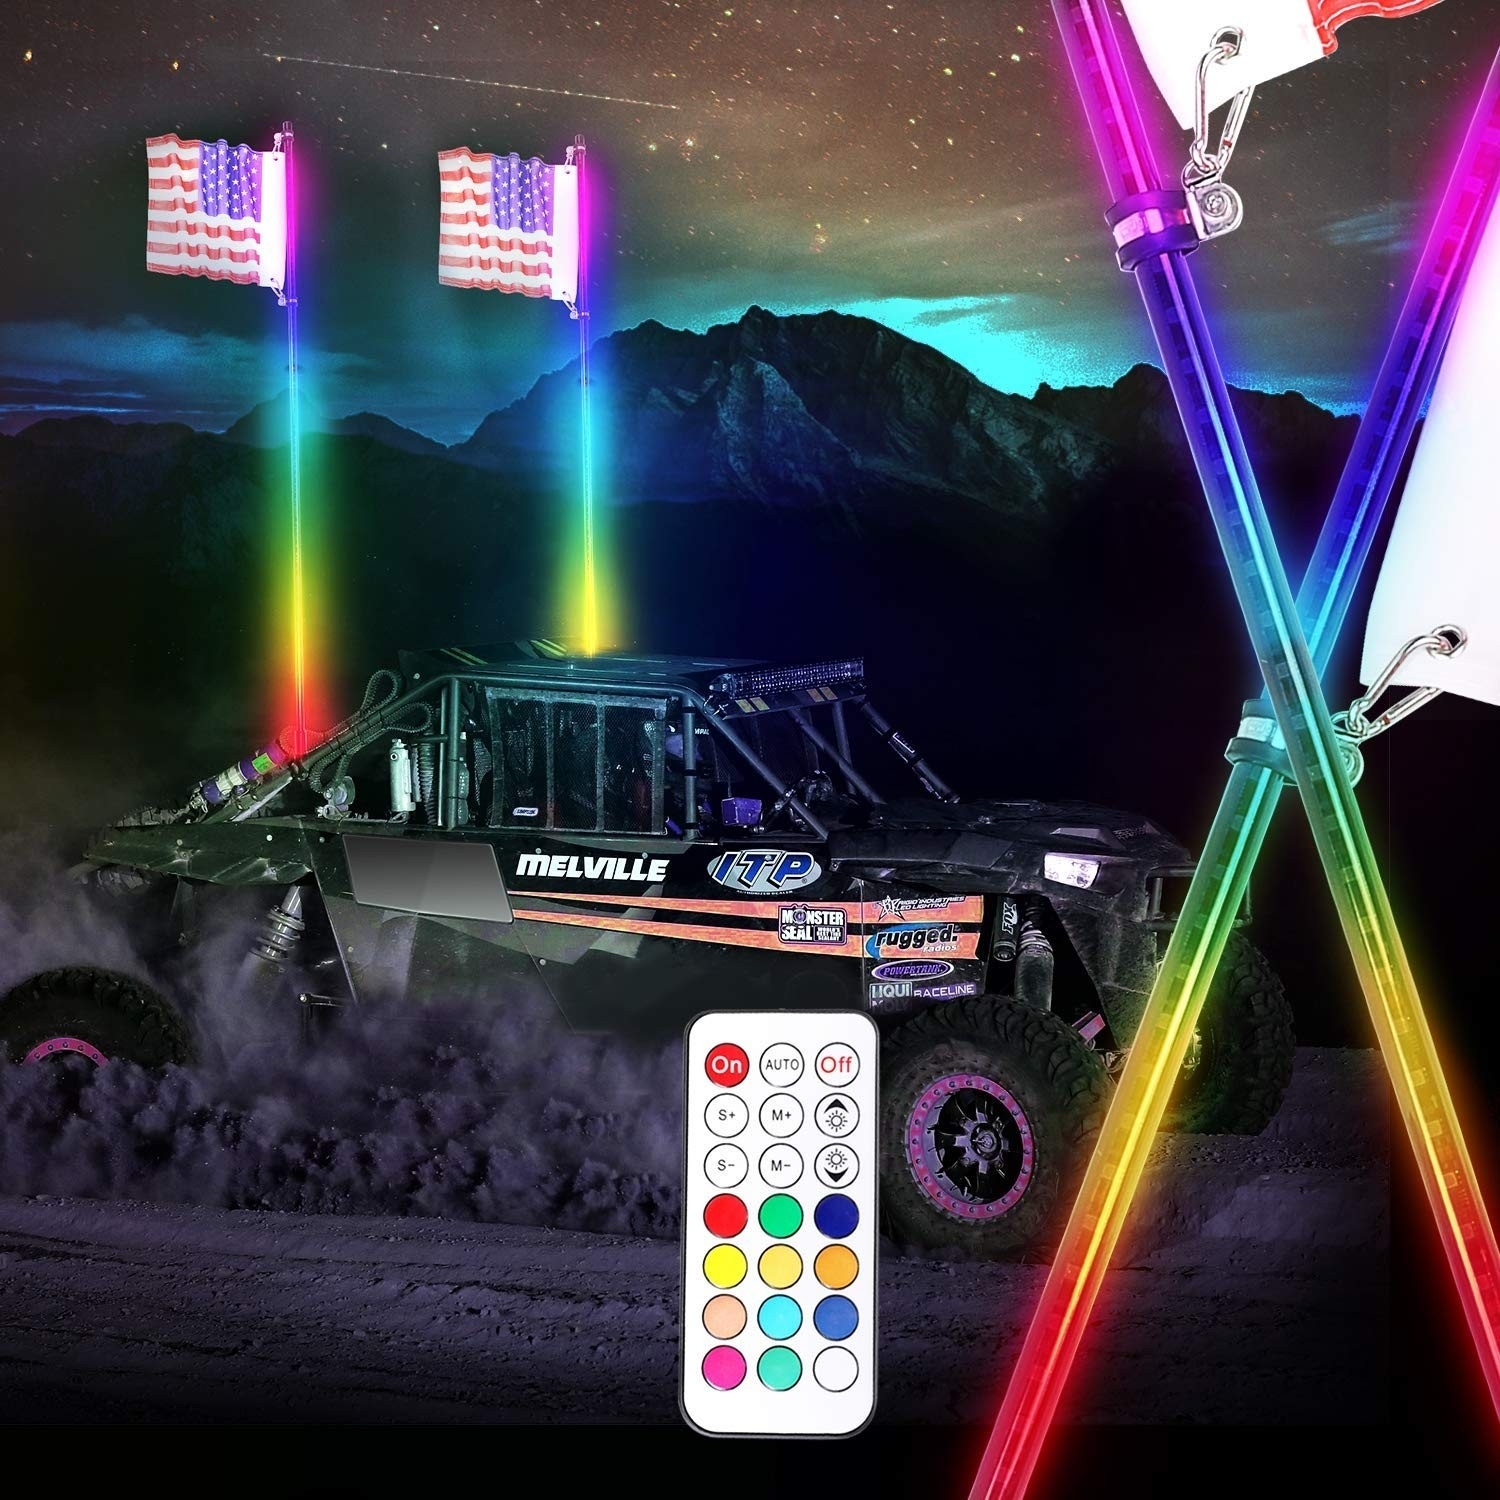 LED Whip Lights, OFFROADTOWN 2Pcs 5FT Remote Control Spiral Lighted Whips RGB Dancing/Chasing Whip Light LED Antenna Whips with Flag for ATV UTV RZR Polaris Jeep Truck 4X4 Buggy Dune